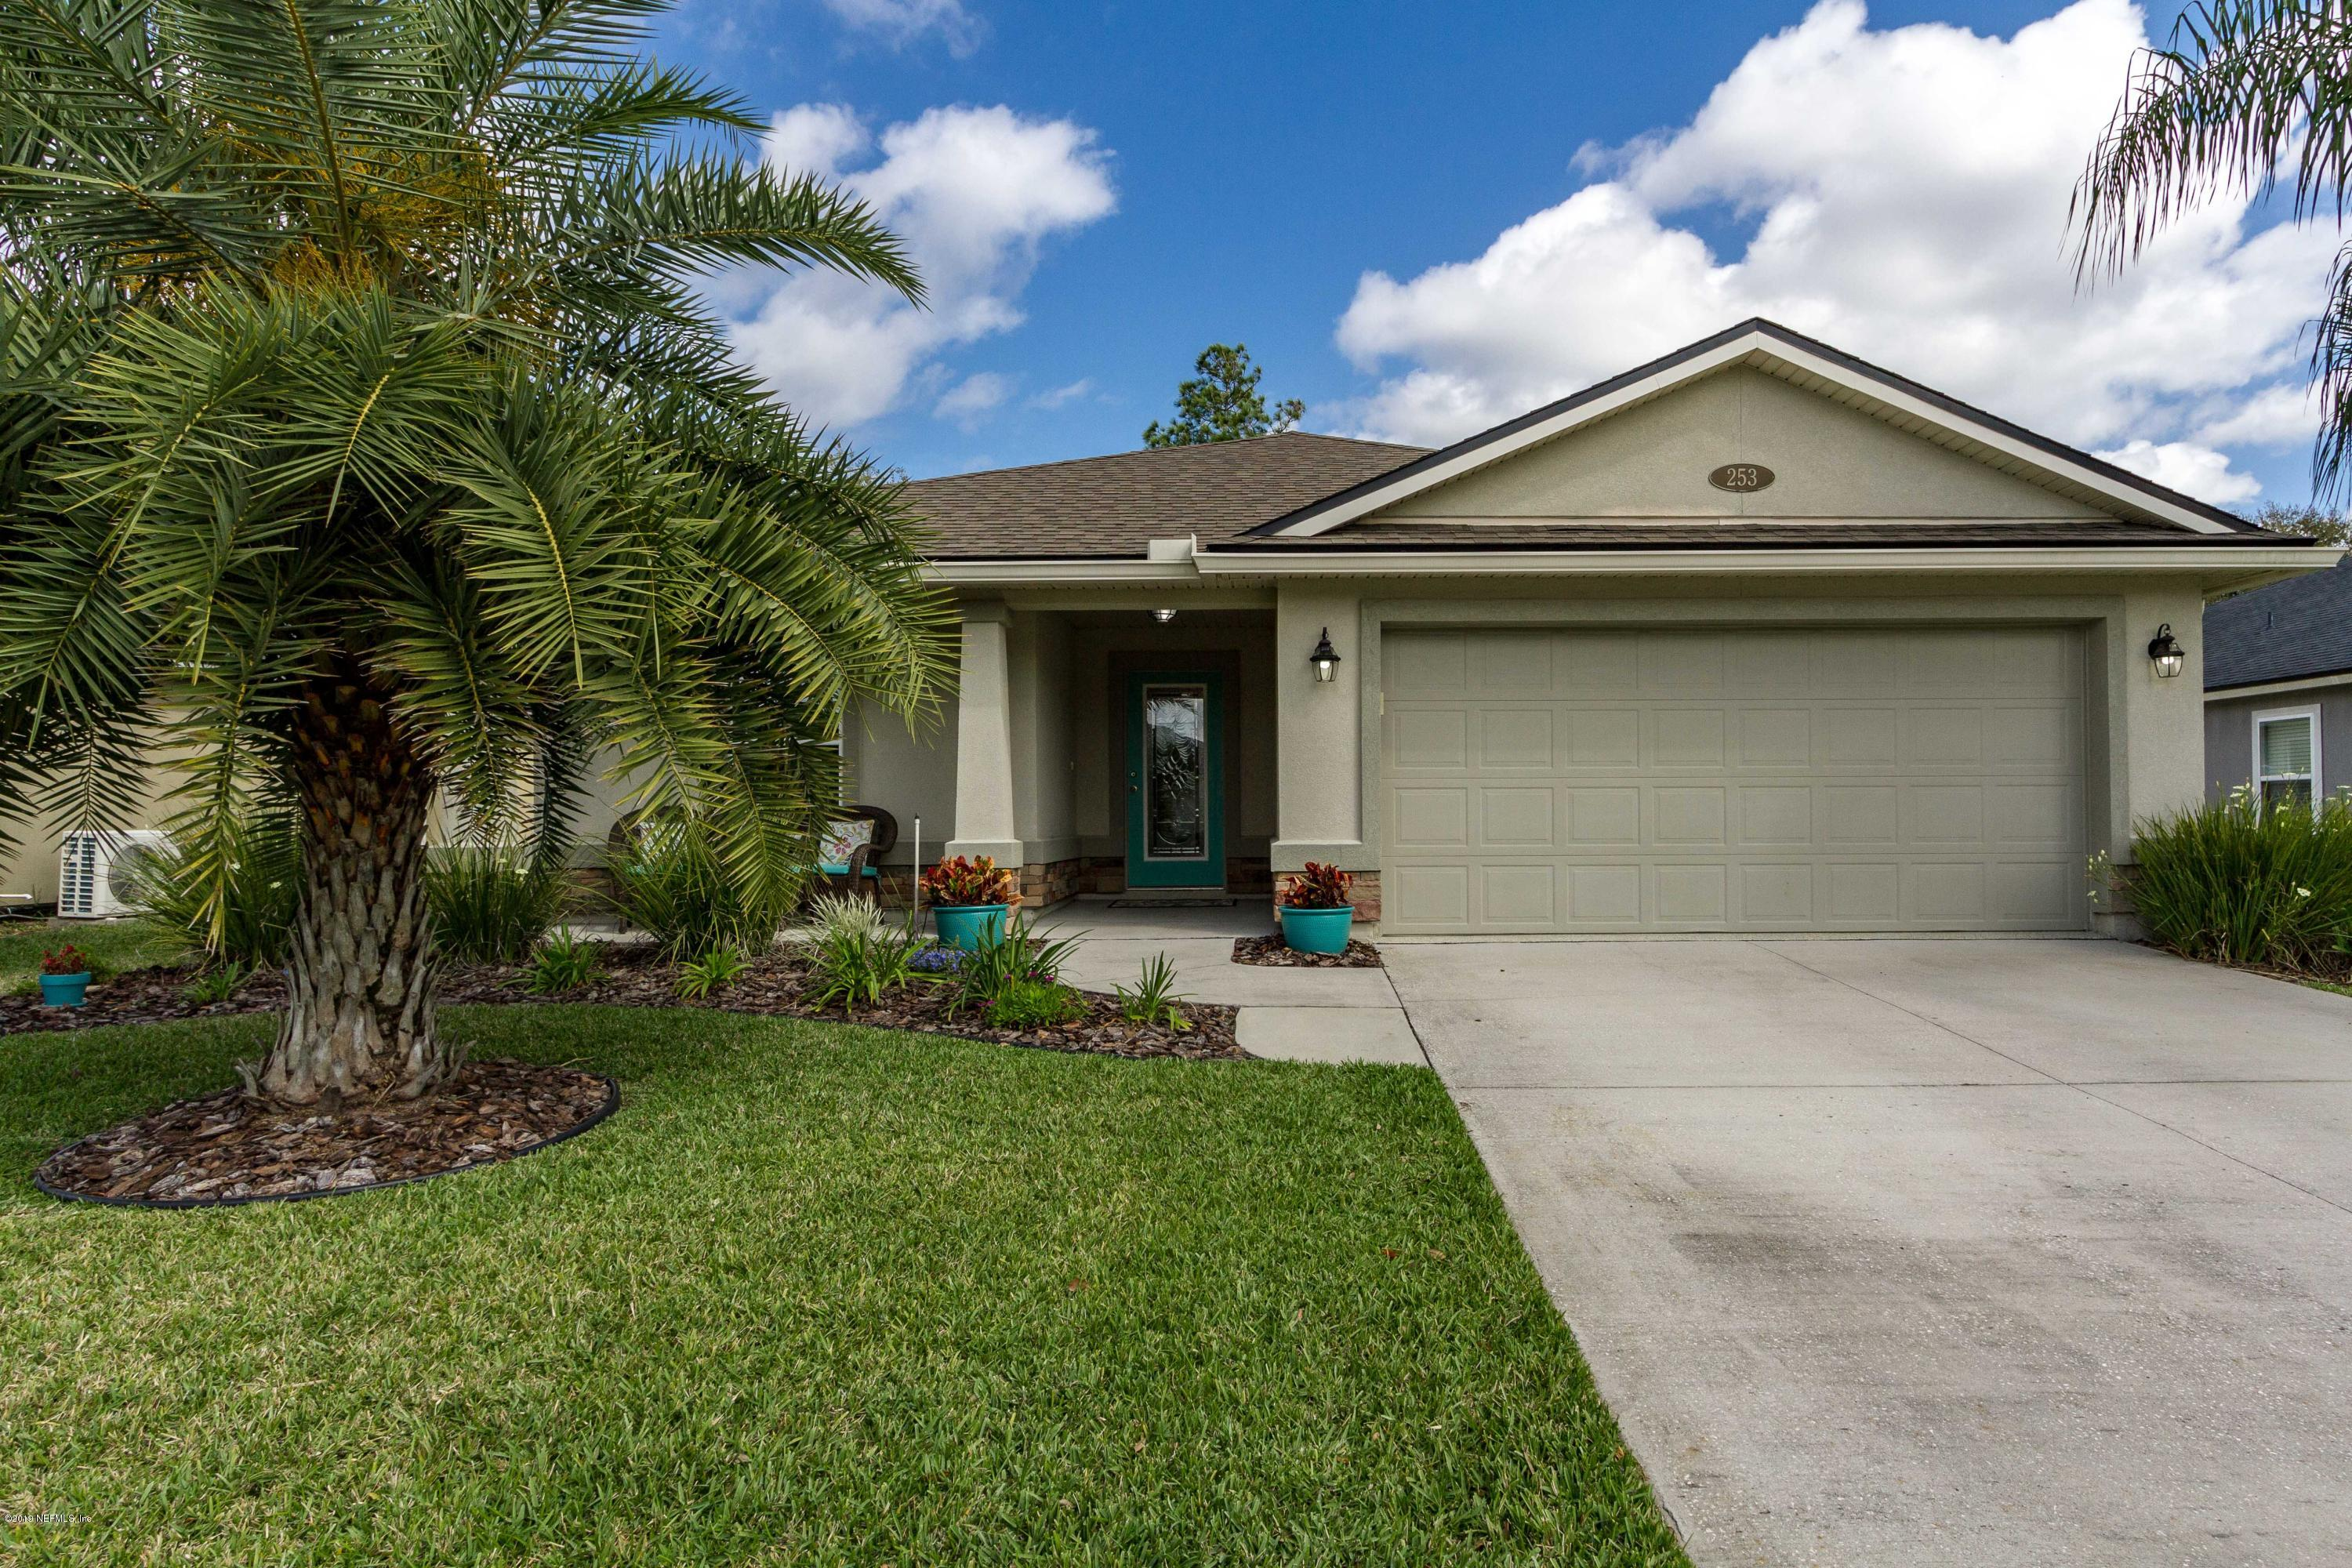 253 W ADELAIDE DR, Julington Creek in ST. JOHNS County, FL 32259 Home for Sale